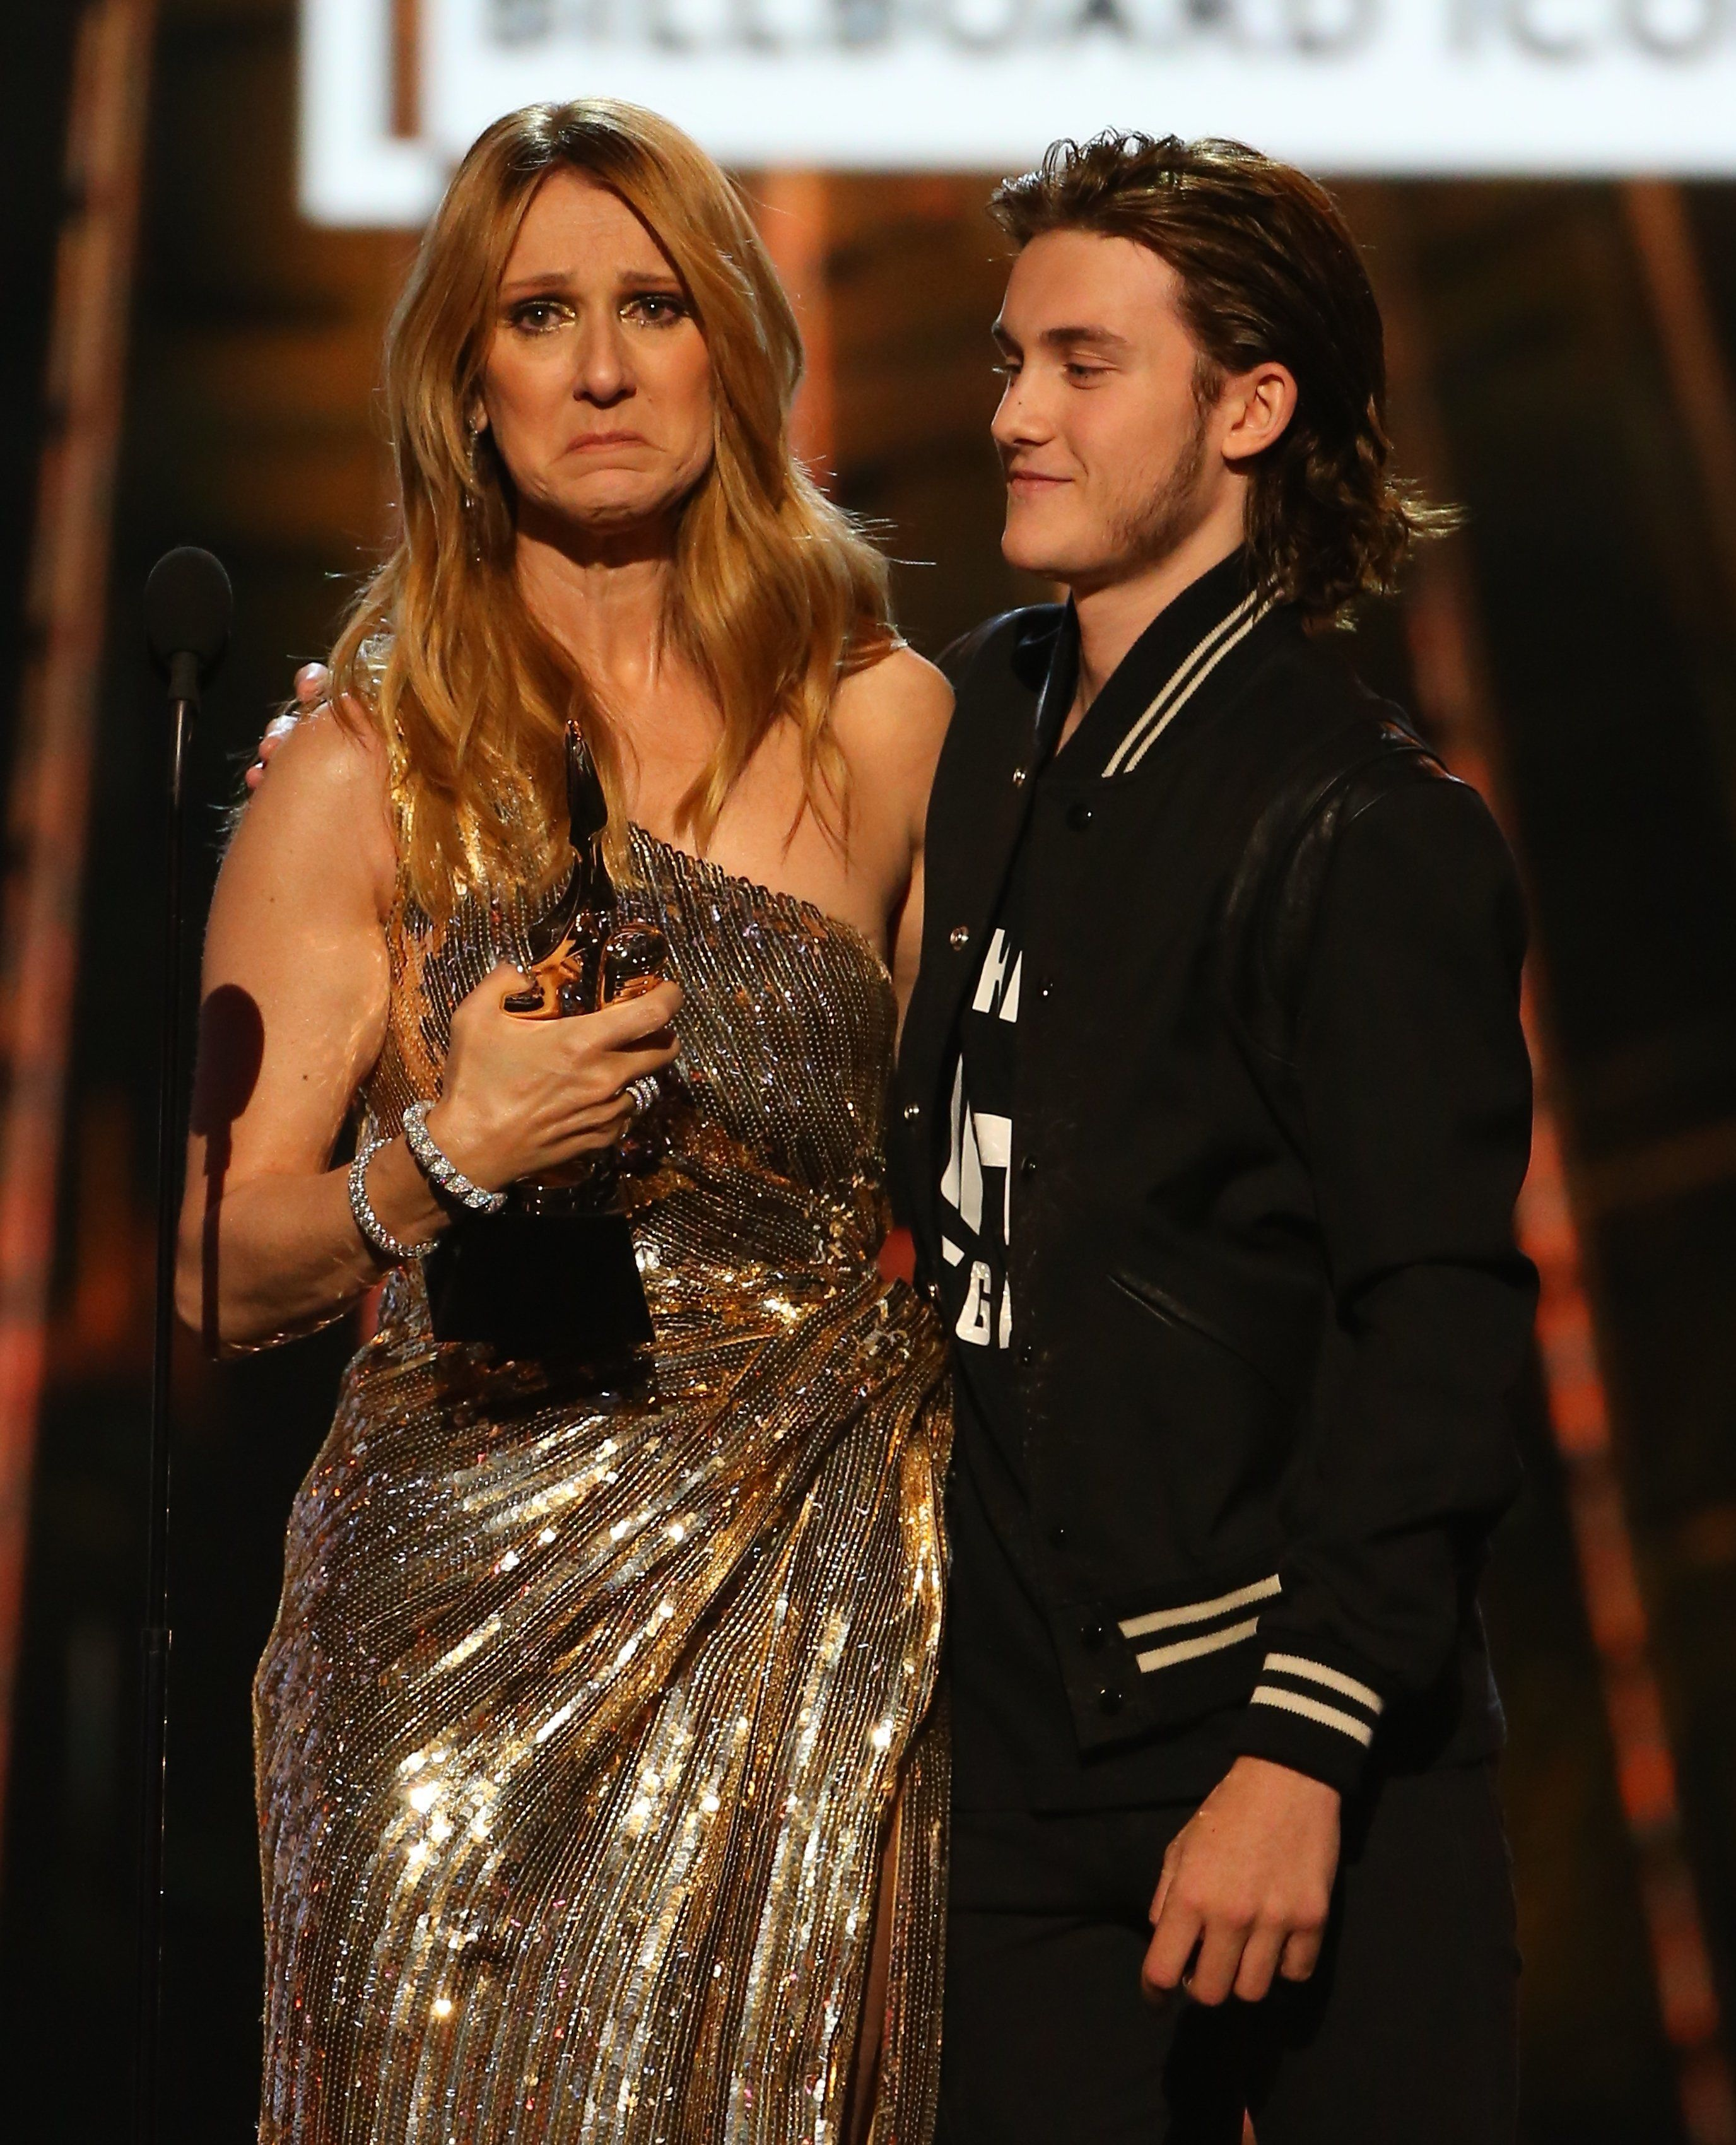 Celine was comforted on stage by her son as she broke down in accepting her Icon